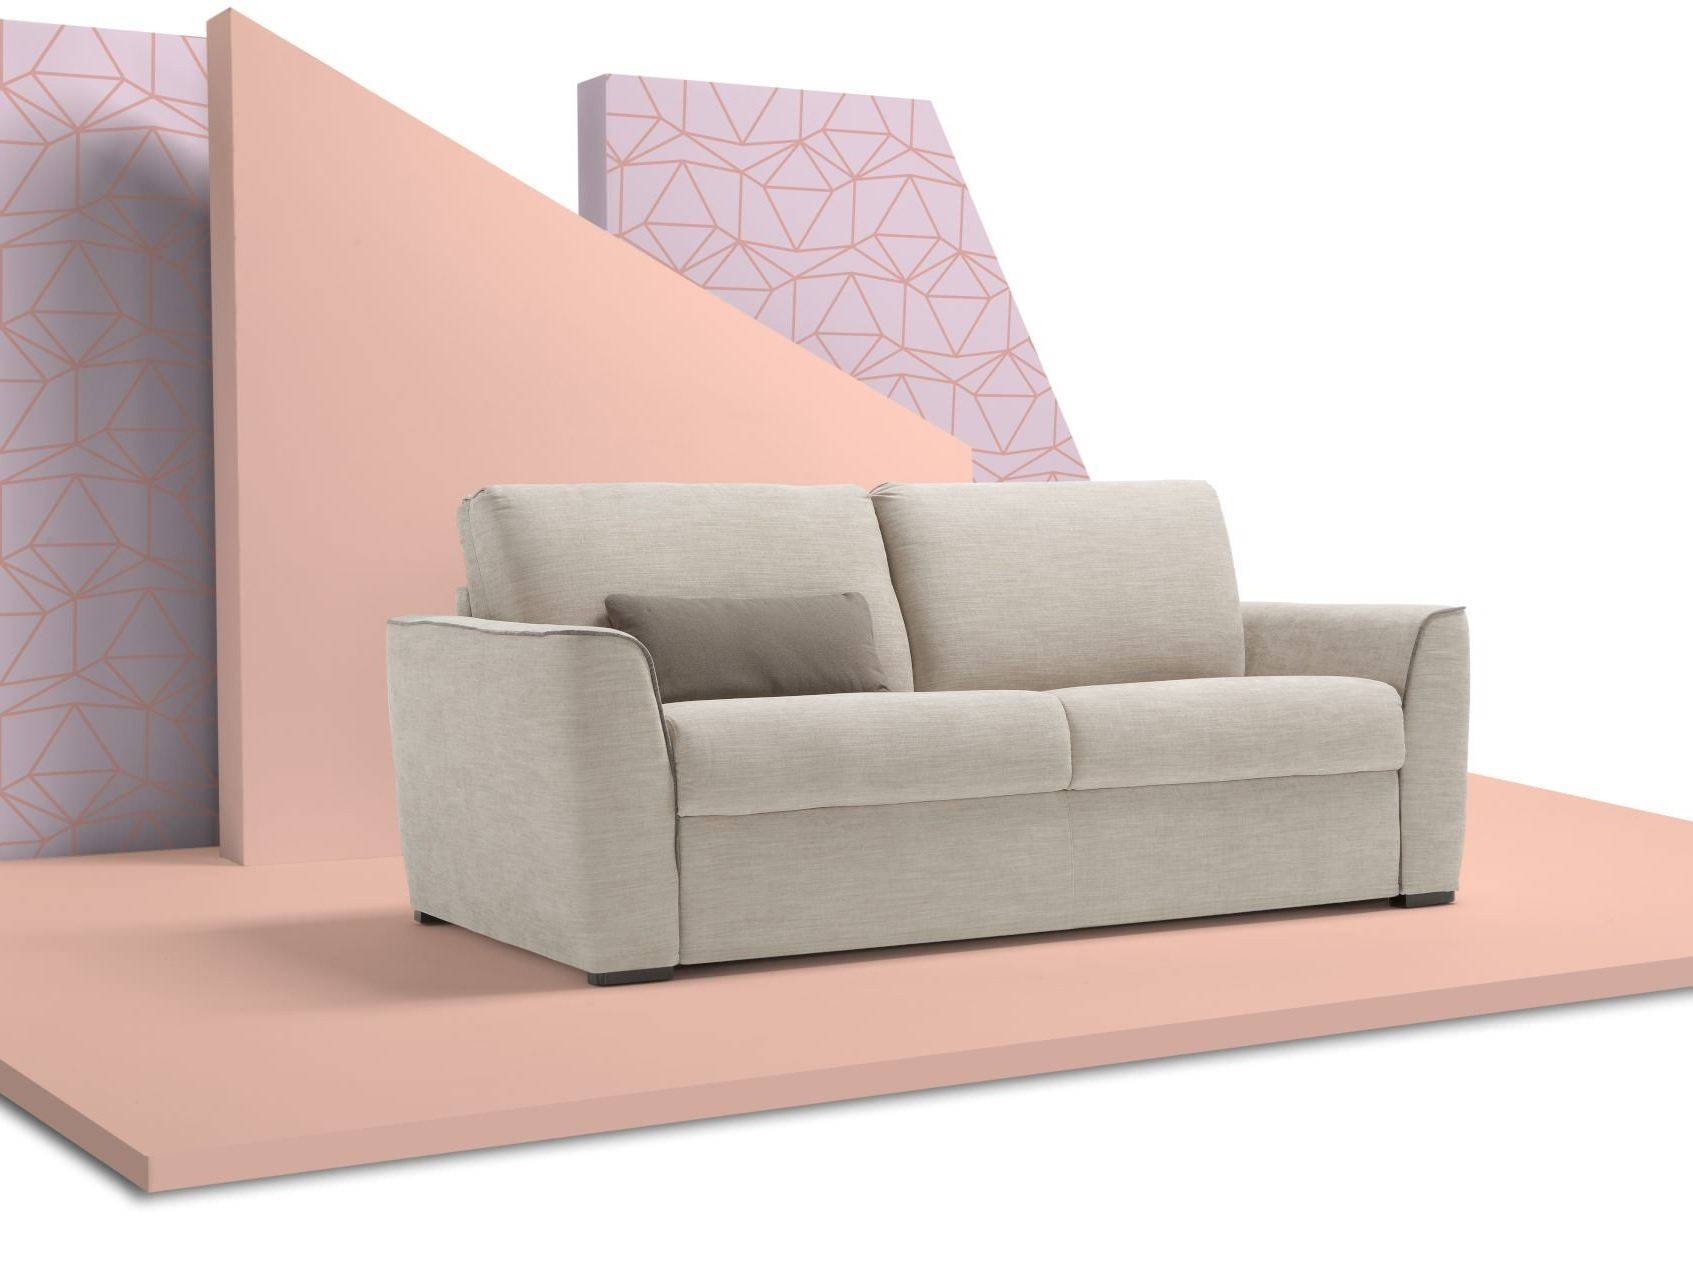 Fabric Sofa Bed With Removable Cover Brixdienne Salotti with Sofas With Removable Covers (Image 8 of 30)